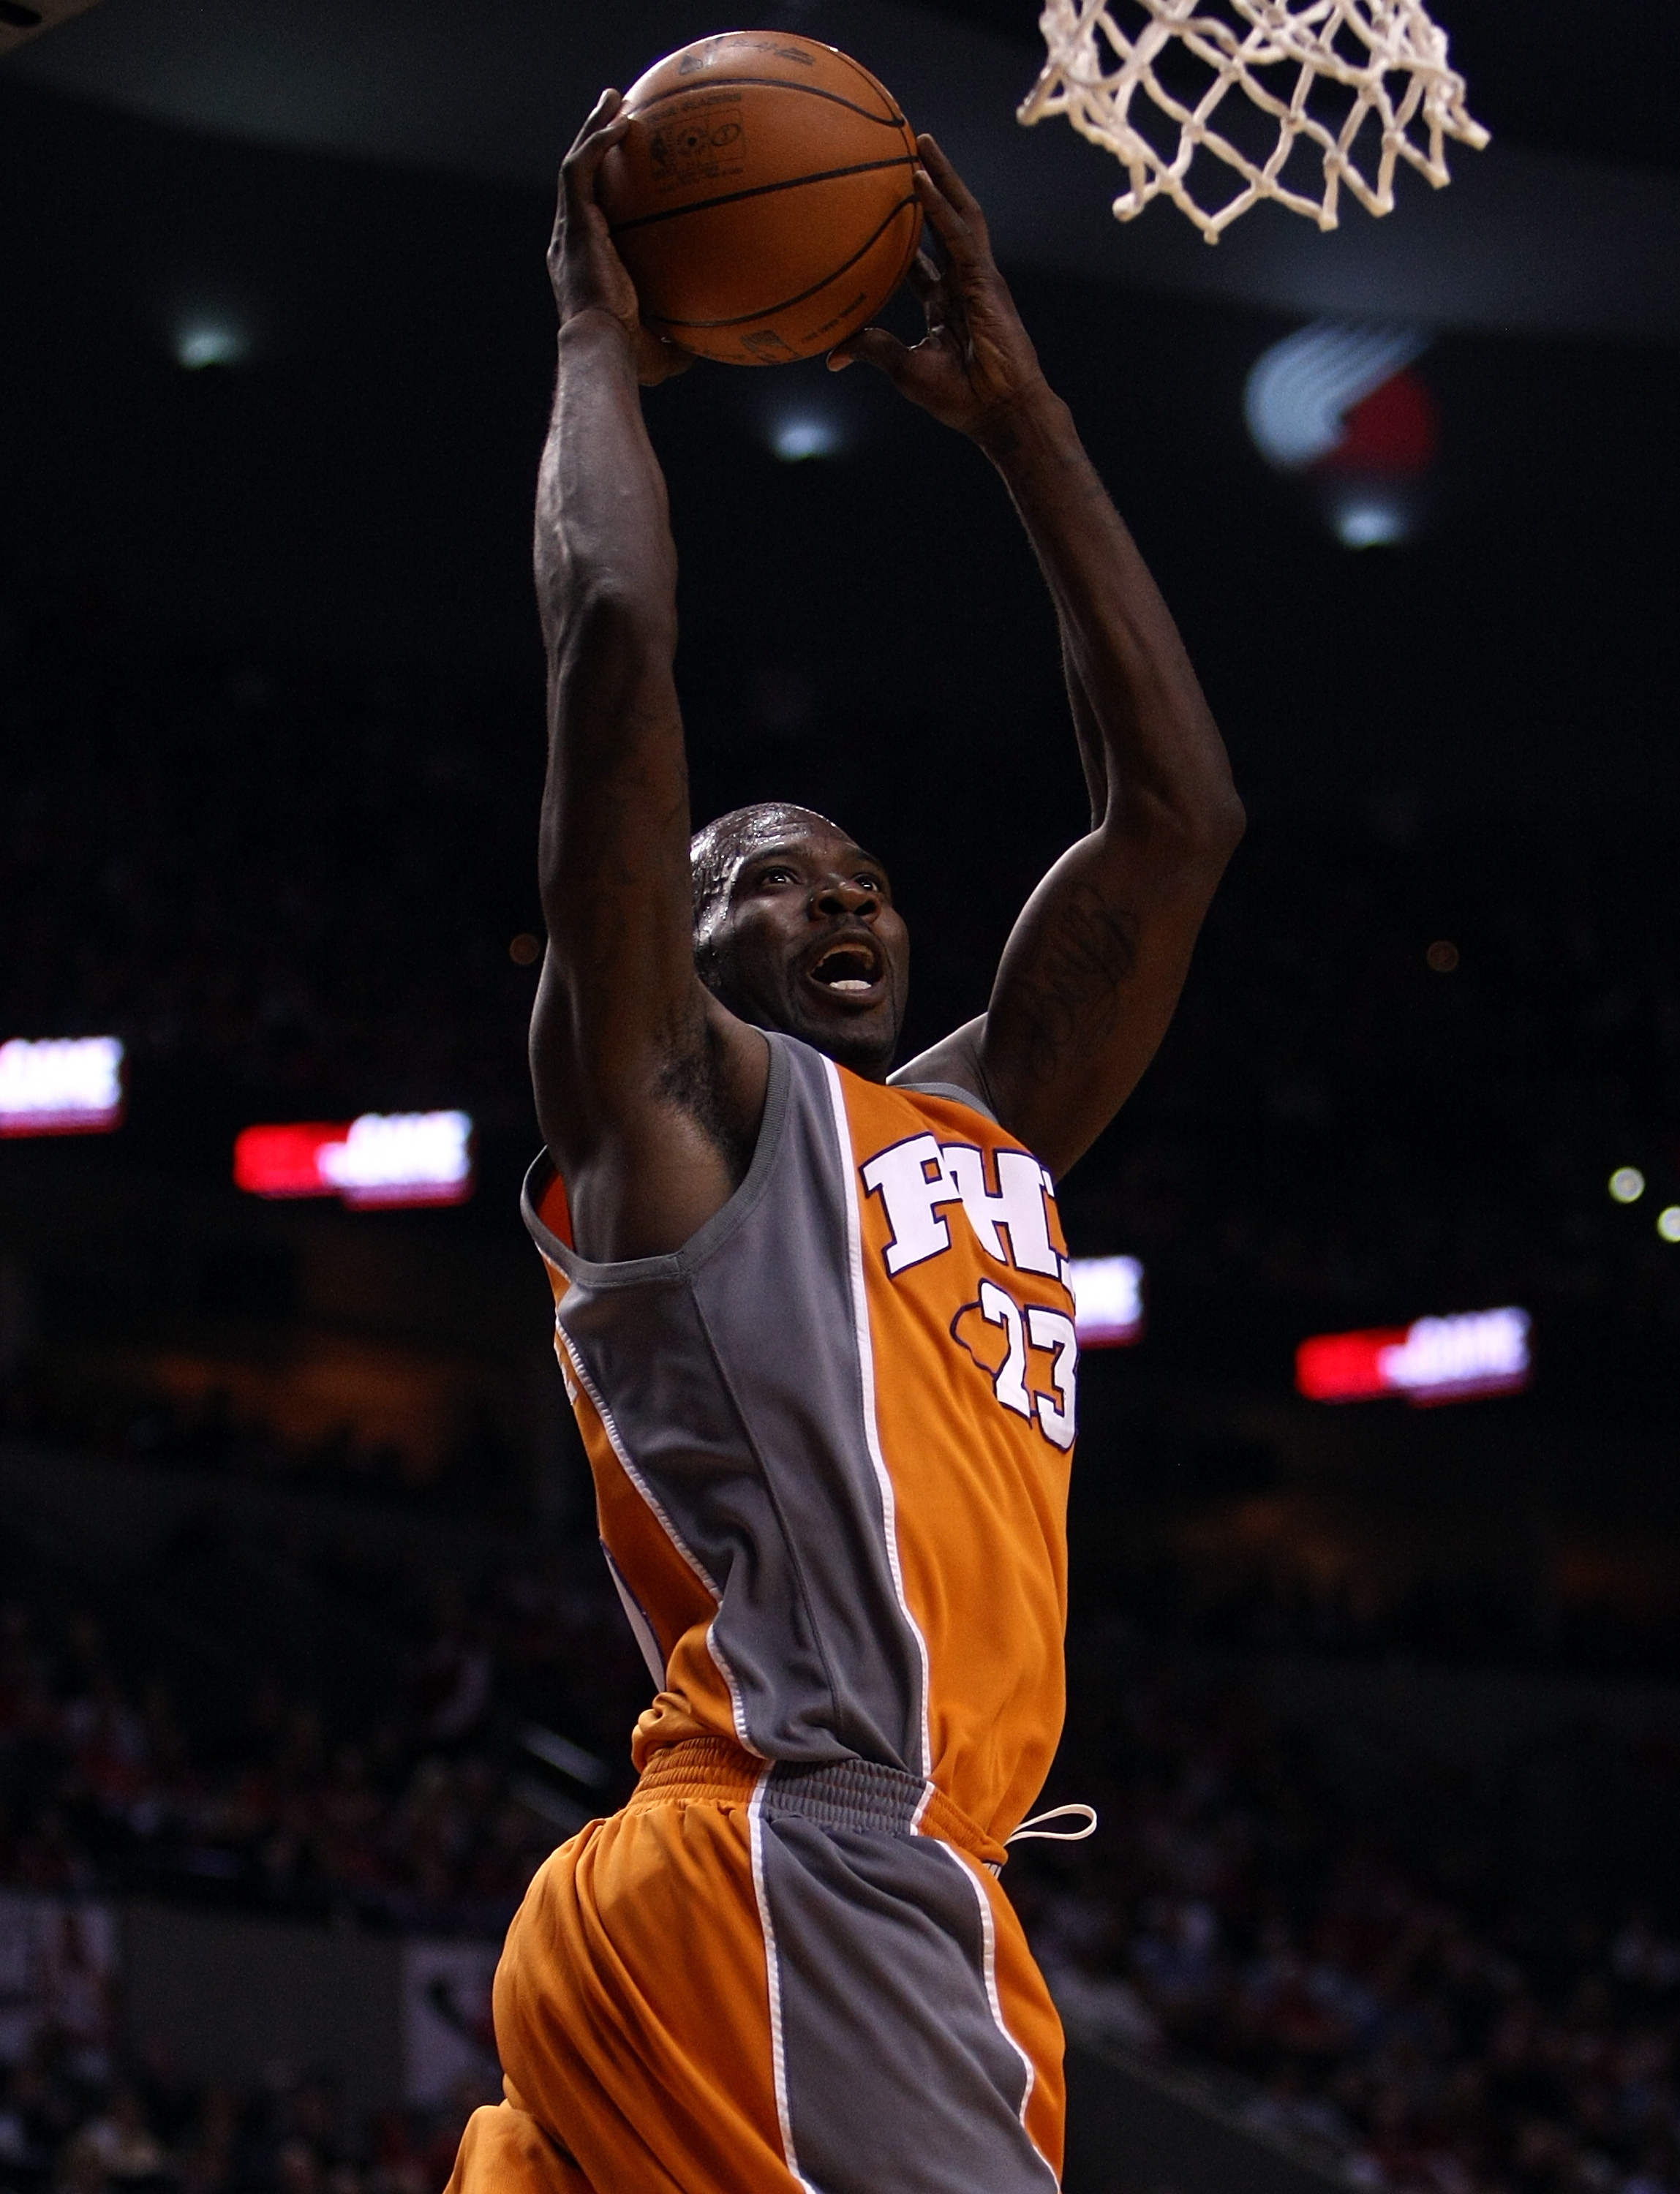 PORTLAND, OR - APRIL 22:  Jason Richardson #23 of the Phoenix Suns goes up for a dunk against the Portland Trail Blazers during Game 3 of the Western Conference Quarterfinals of the NBA Playoffs on April 22, 20010 at the Rose Garden in Portland, Oregon. N